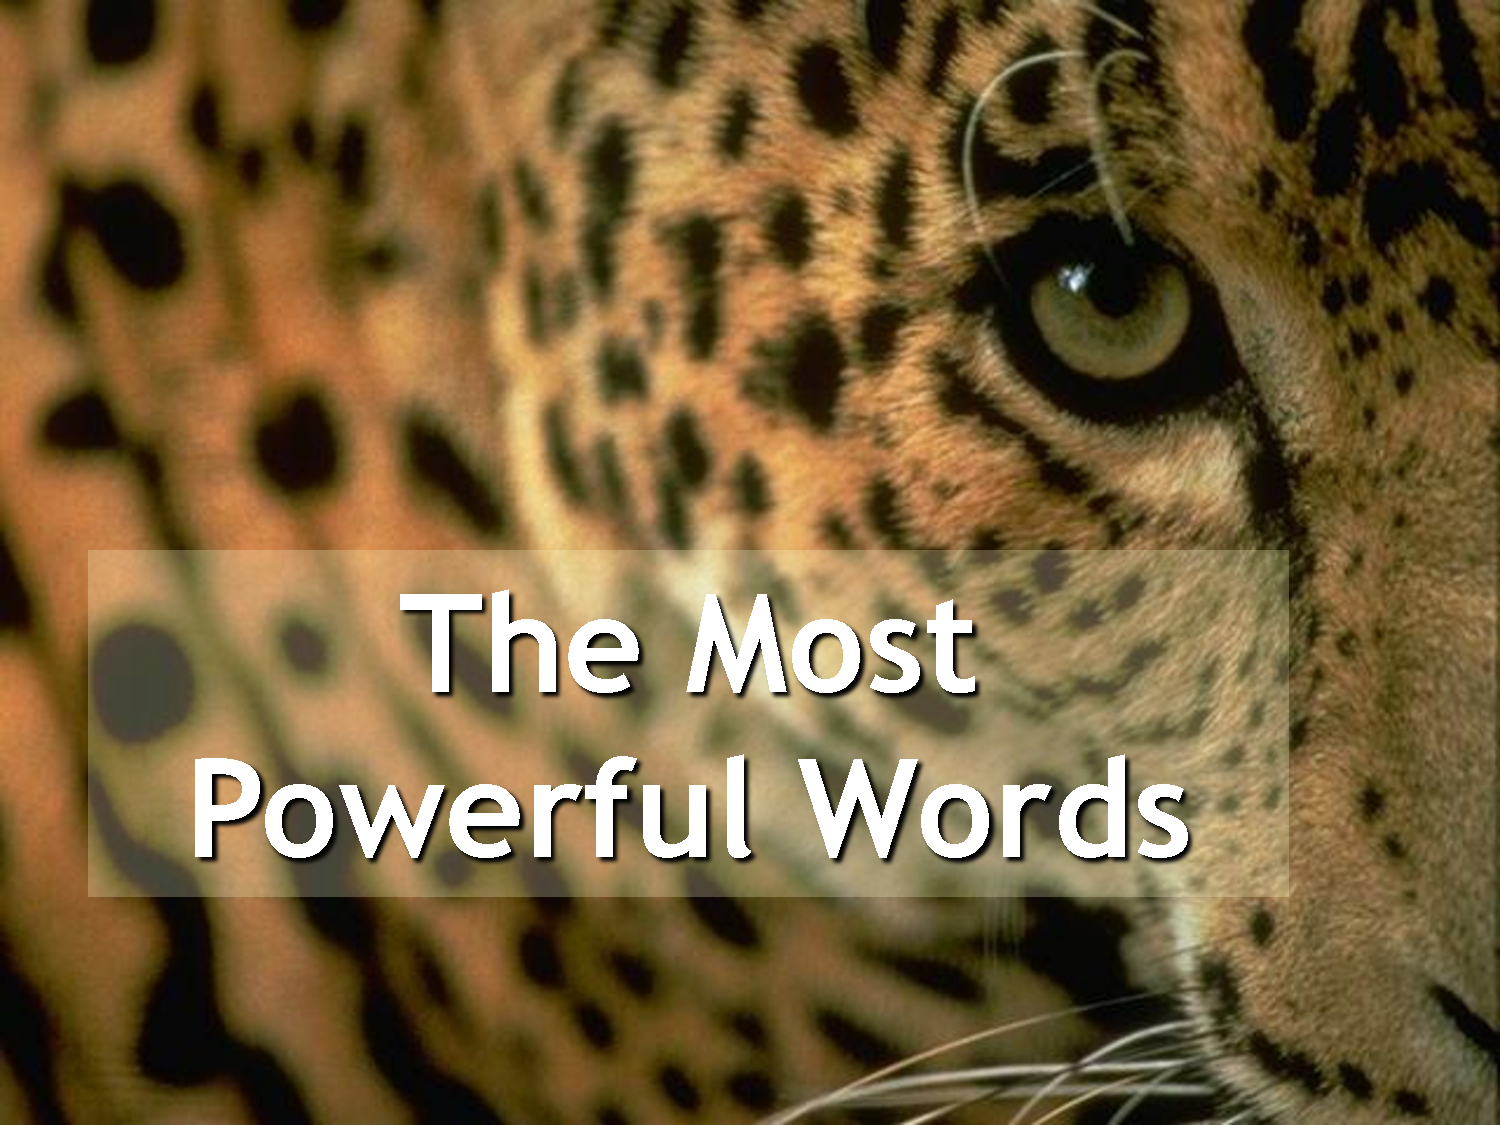 most+powerful+words.png (1500×1125)